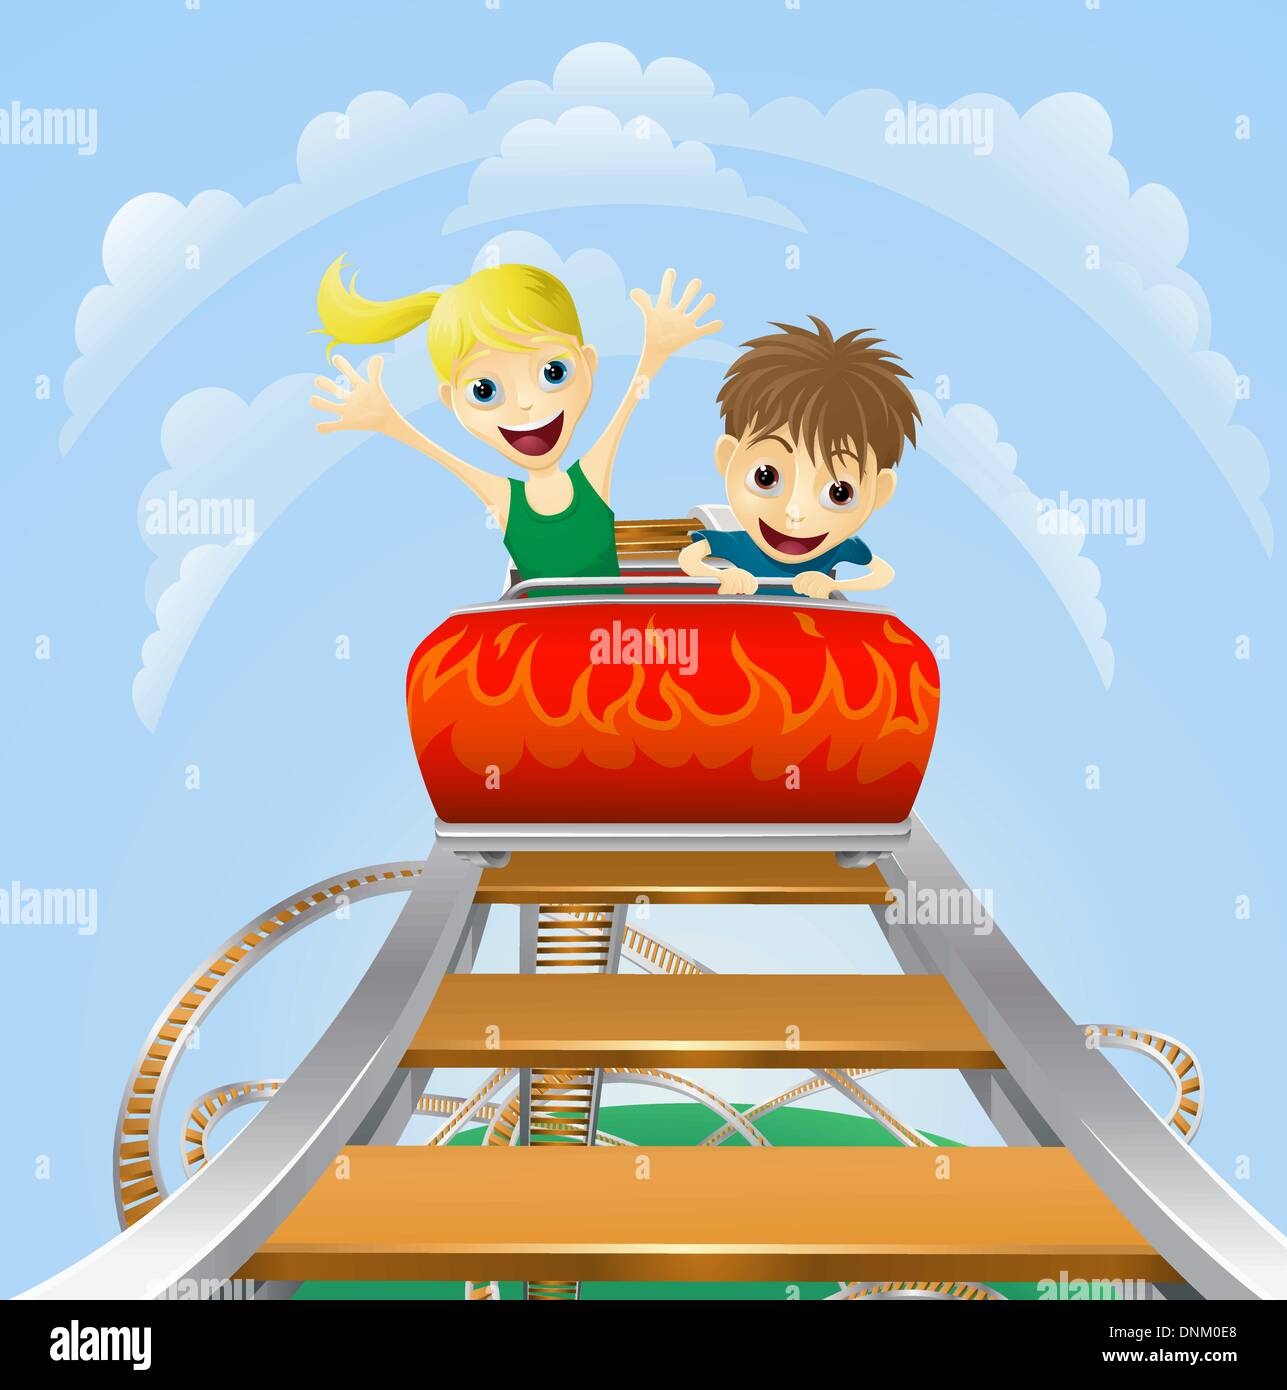 Illustration of a boy and girl enjoying a thrilling roller coaster ride - Stock Vector